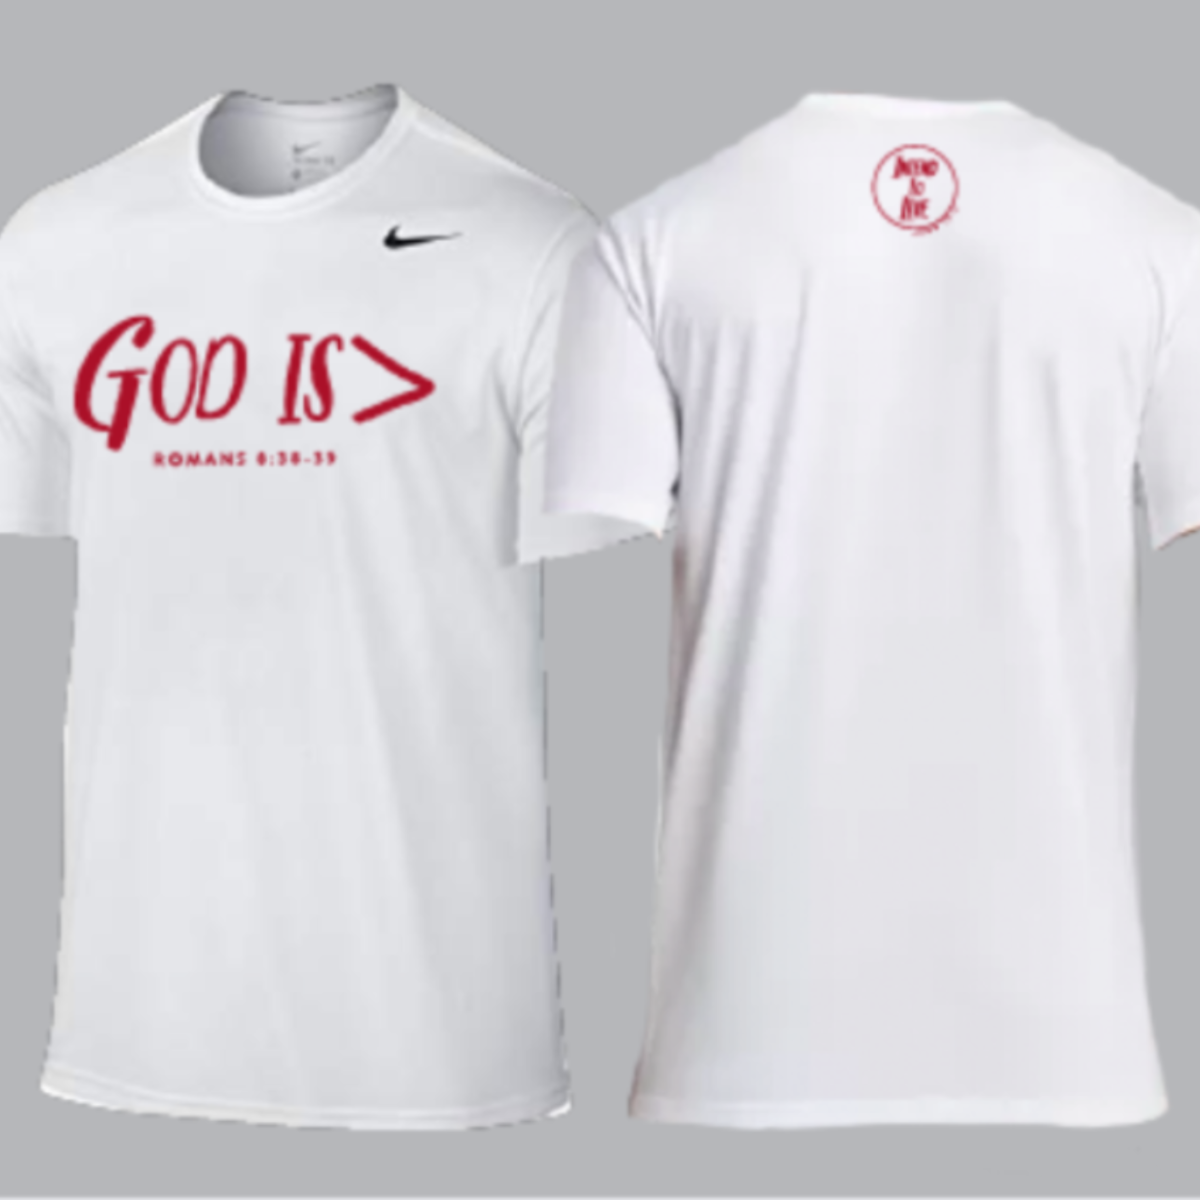 God is > Nike Running Shirt